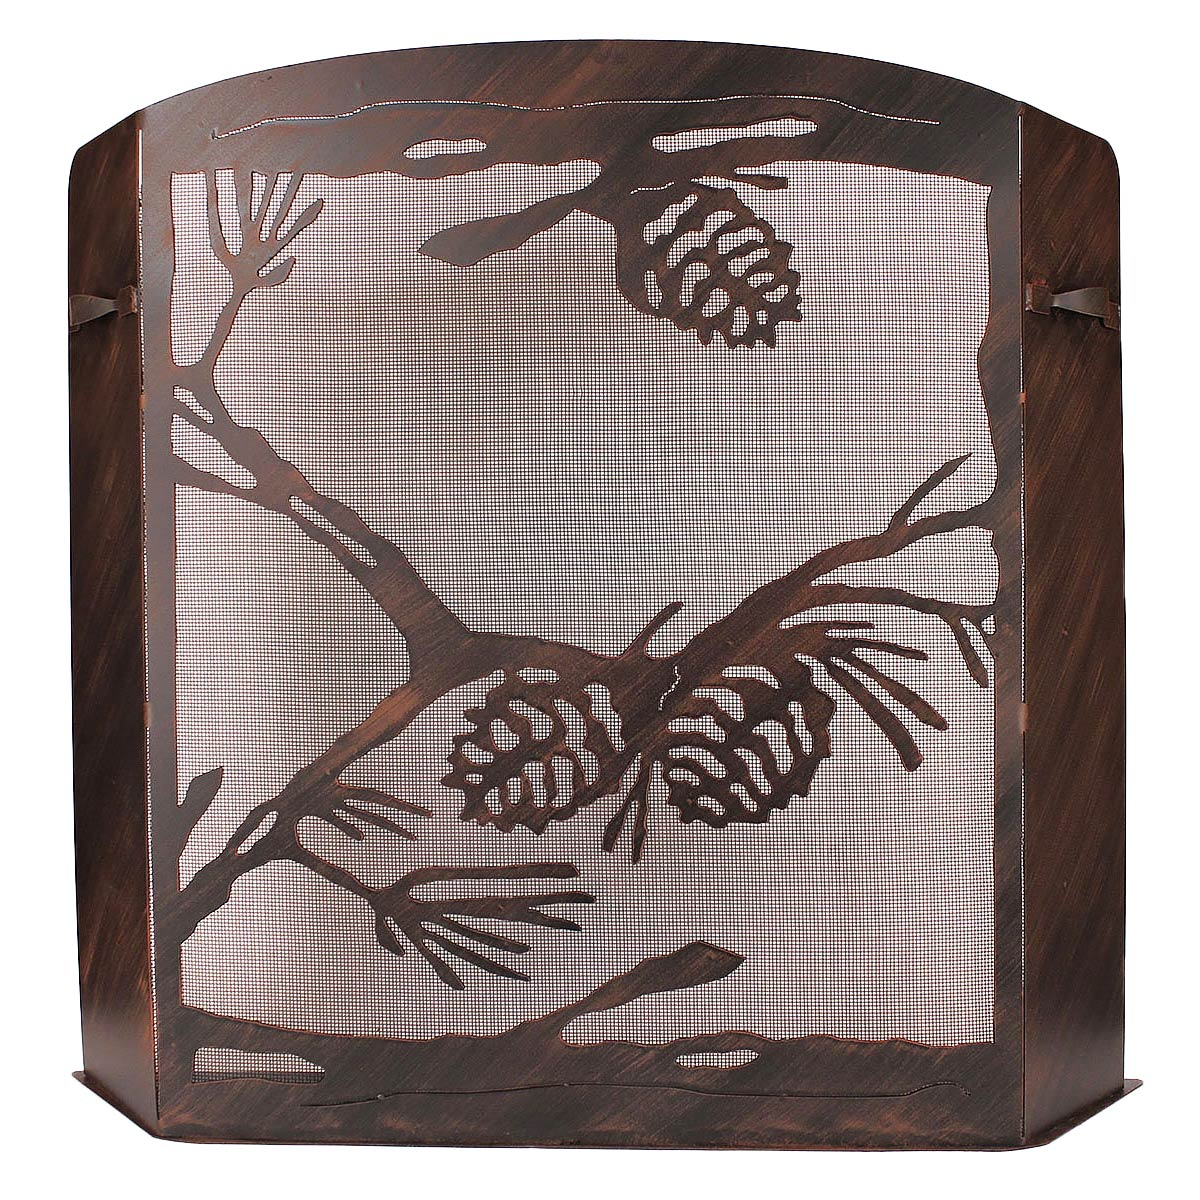 Black Forest Decor Small pinecone scene fireplace screen